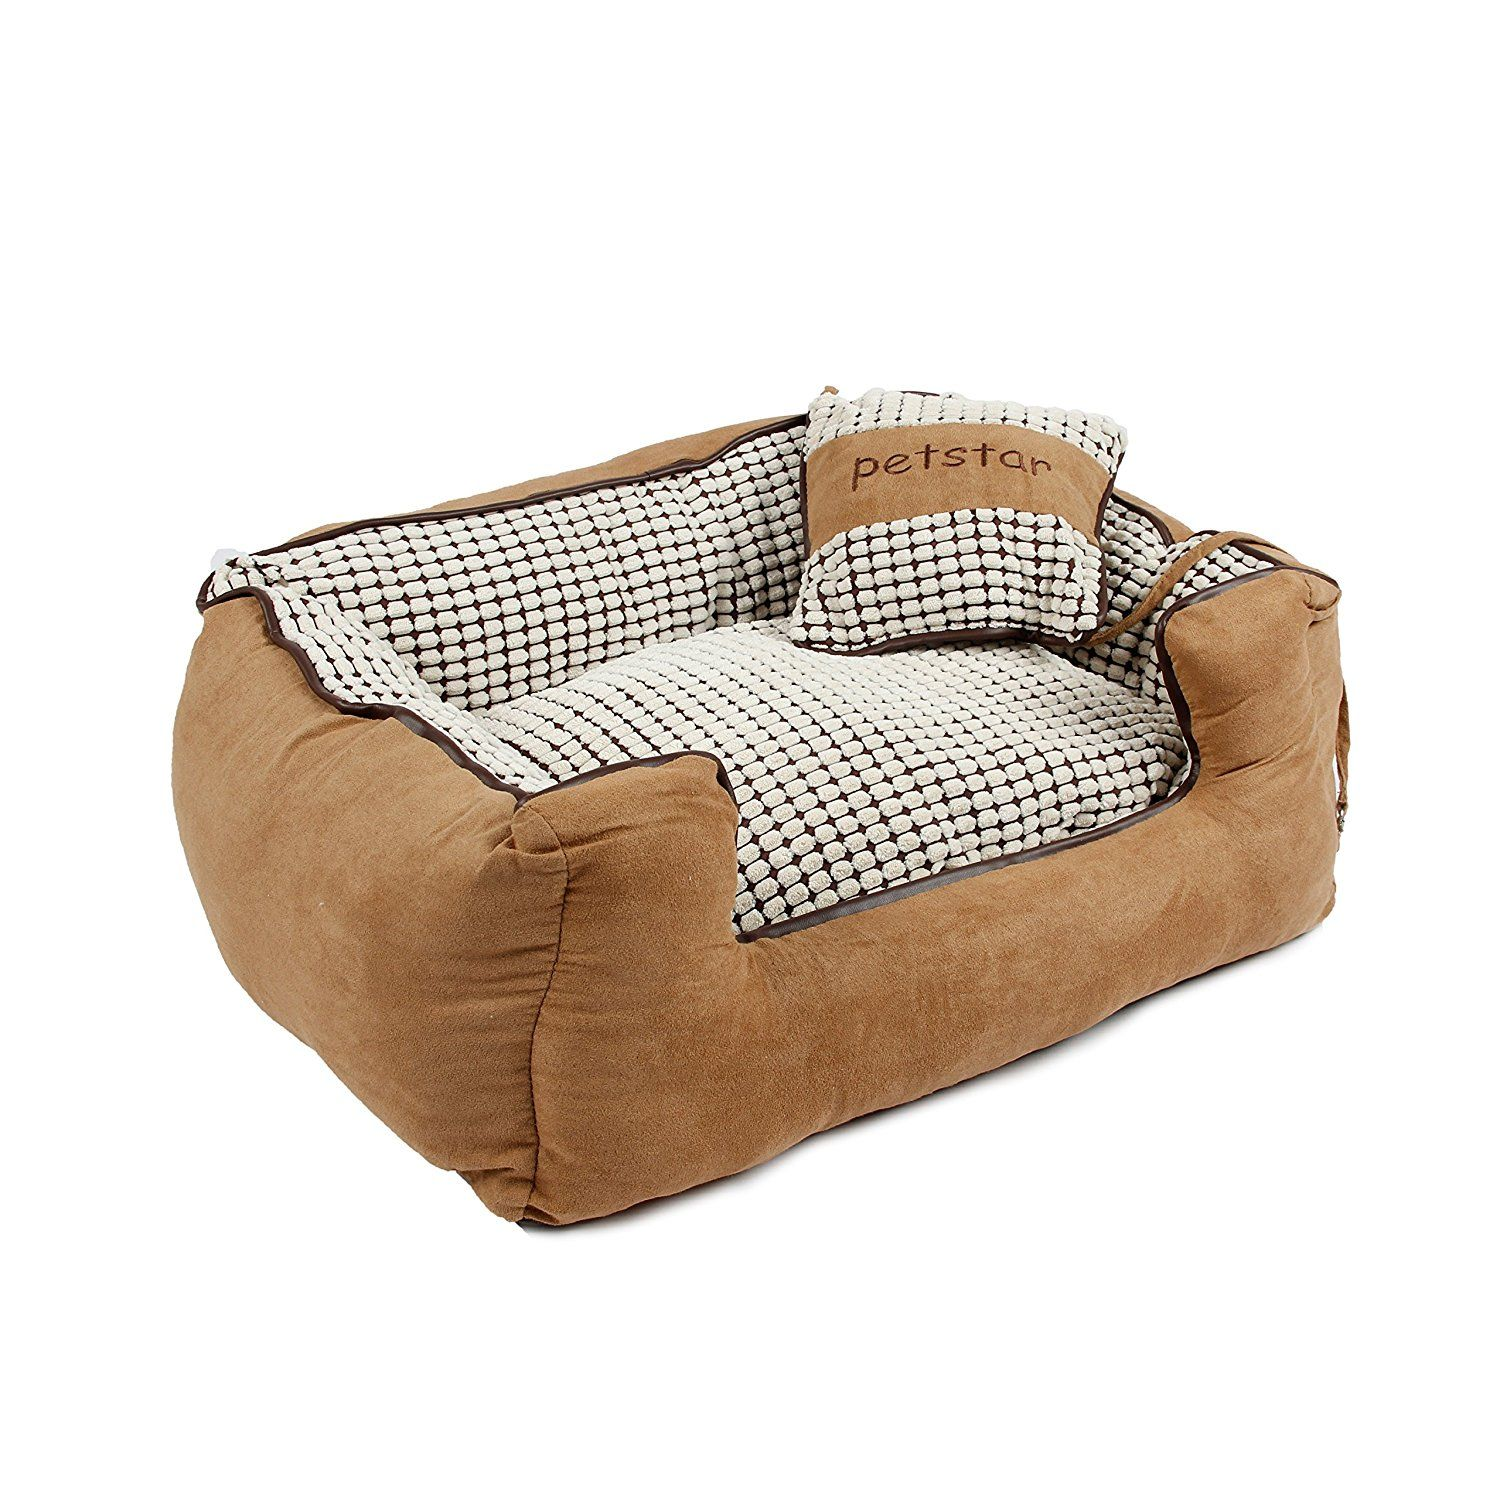 Can be Machine Washable Soft Color Pet Bed Cat Cofa (29.5